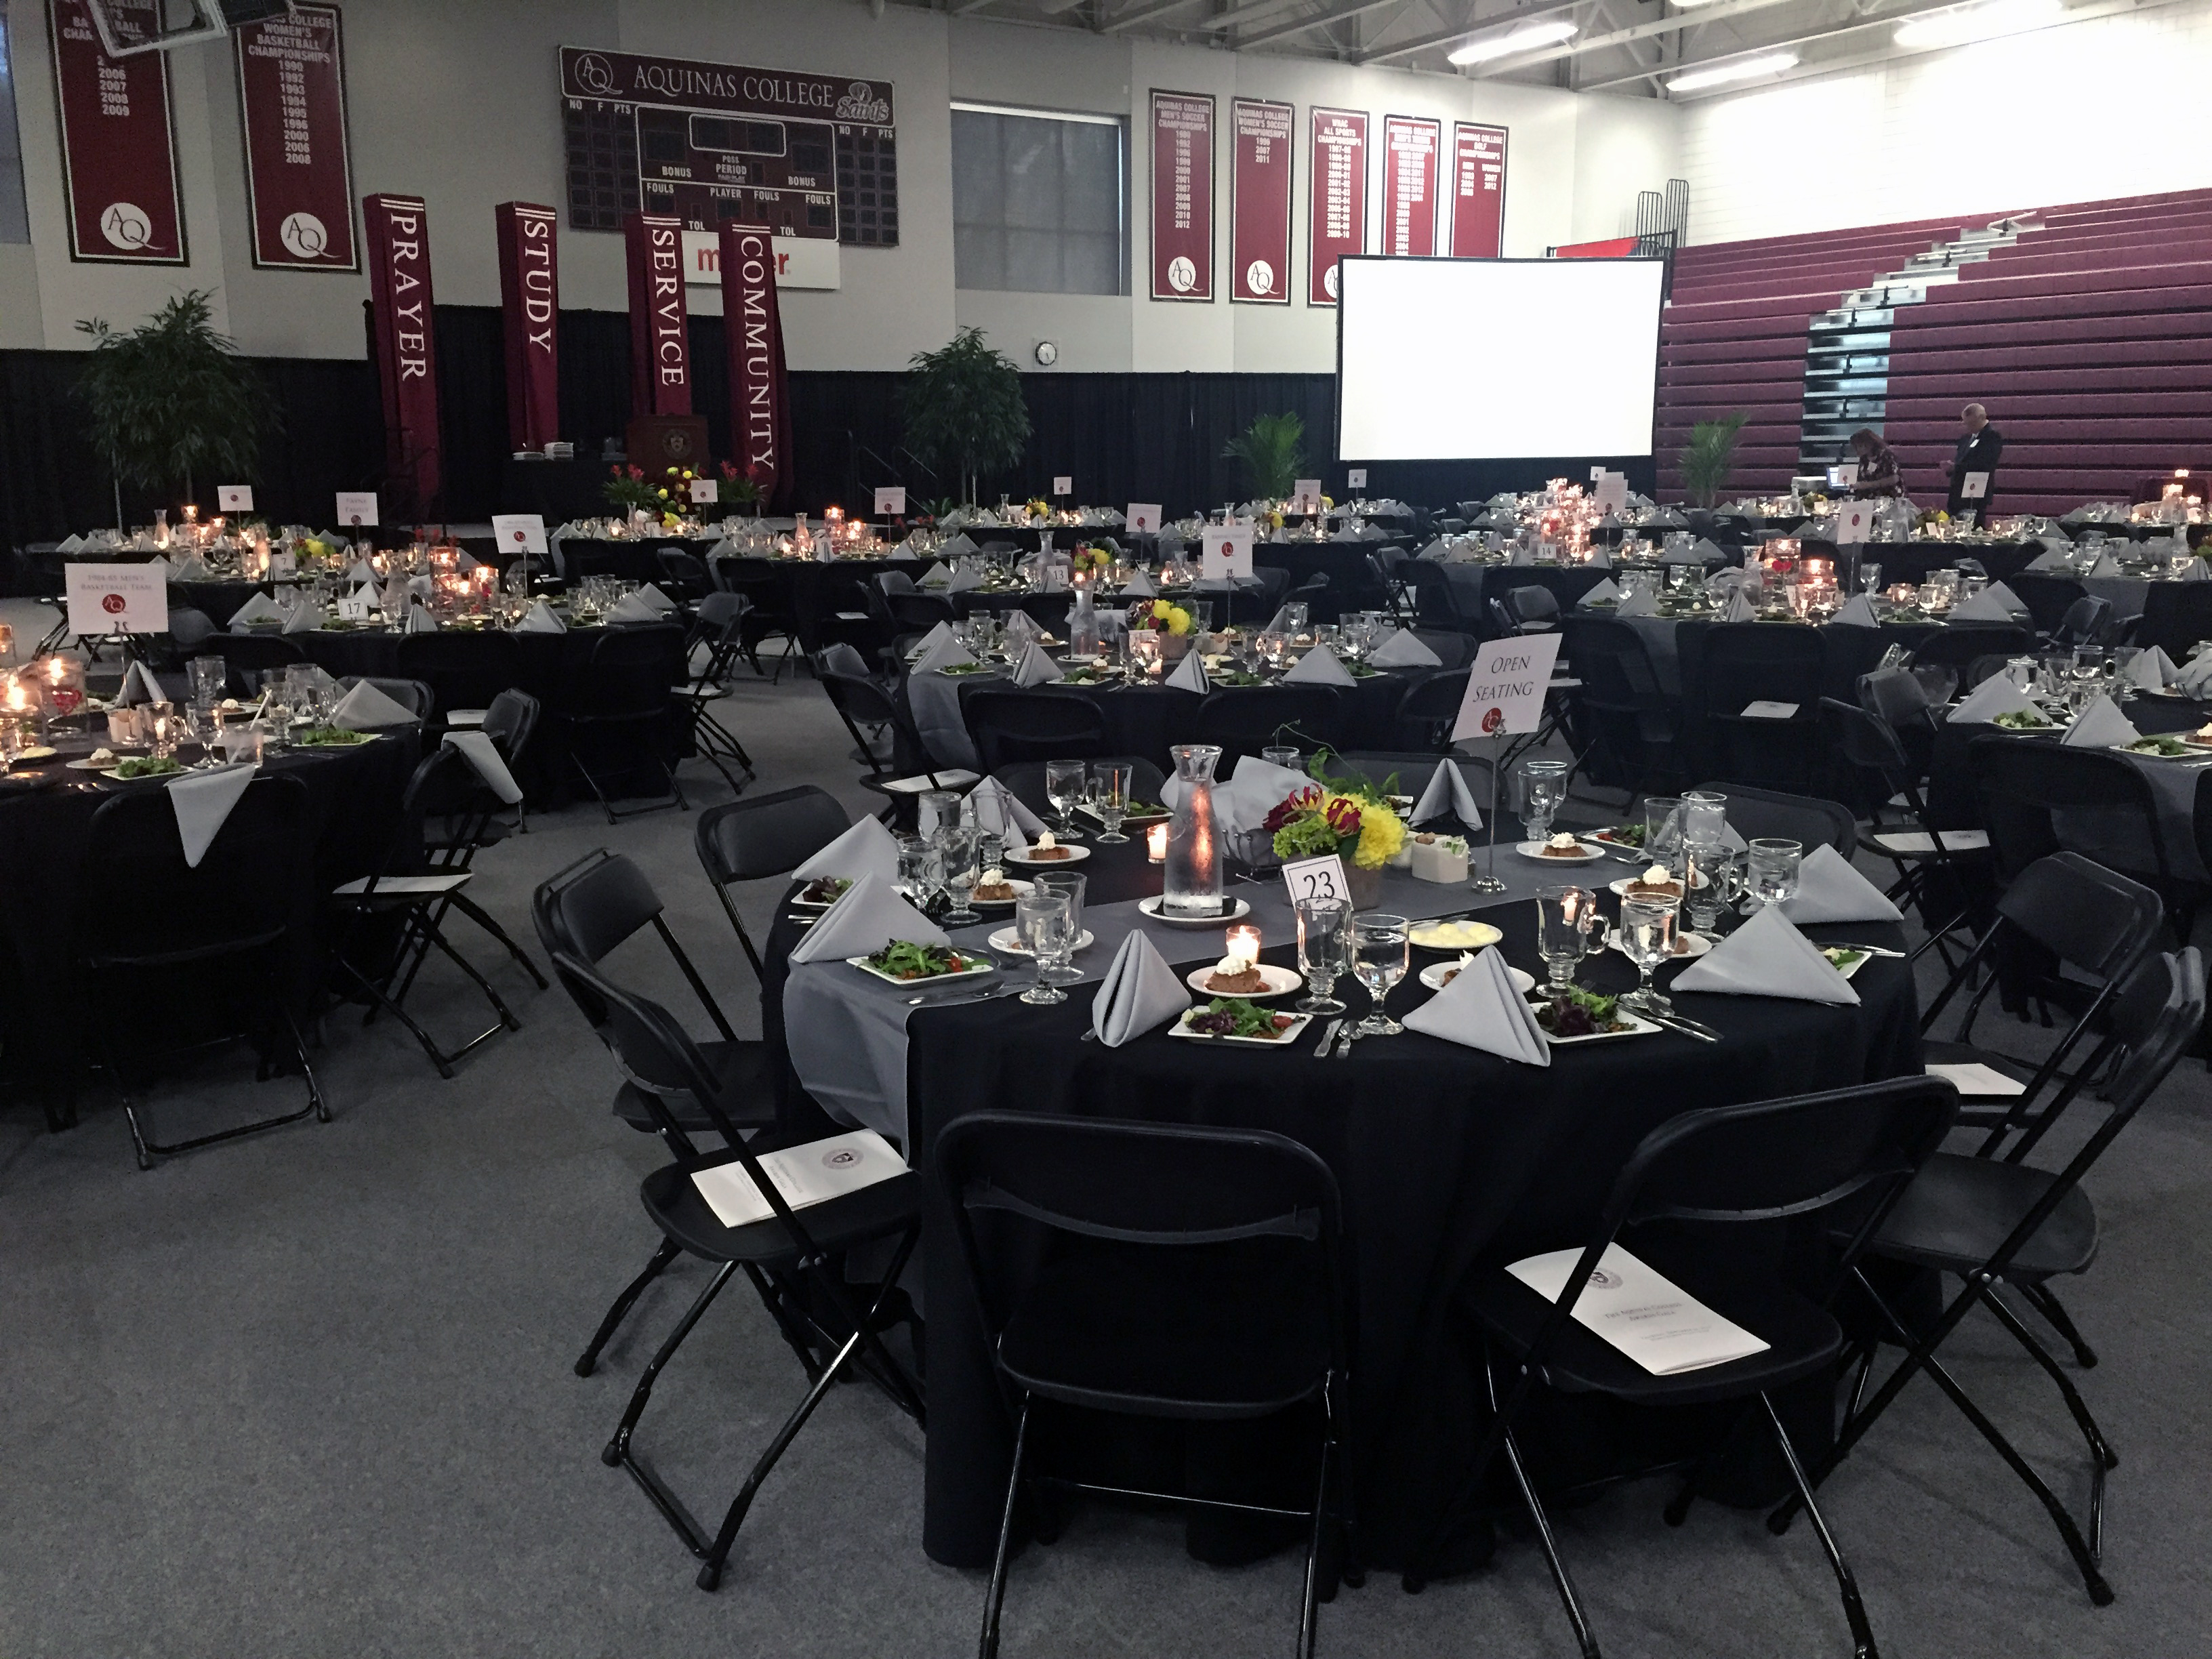 tables set up with fancy dinner decor in the gym